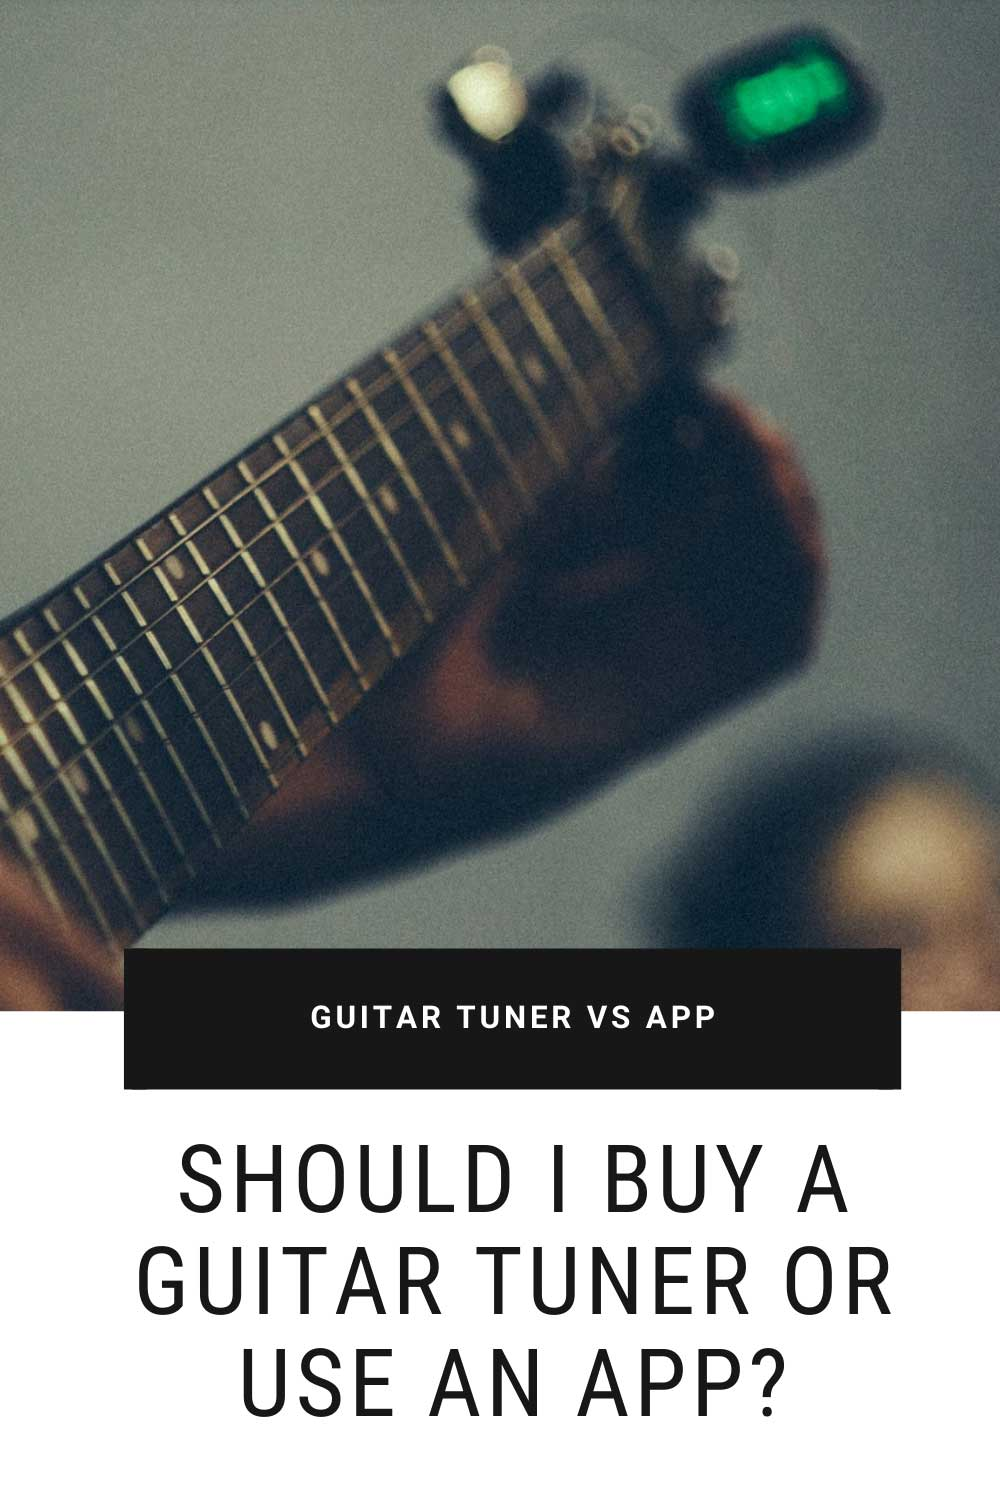 Should I Buy a Guitar Tuner or Use an App?